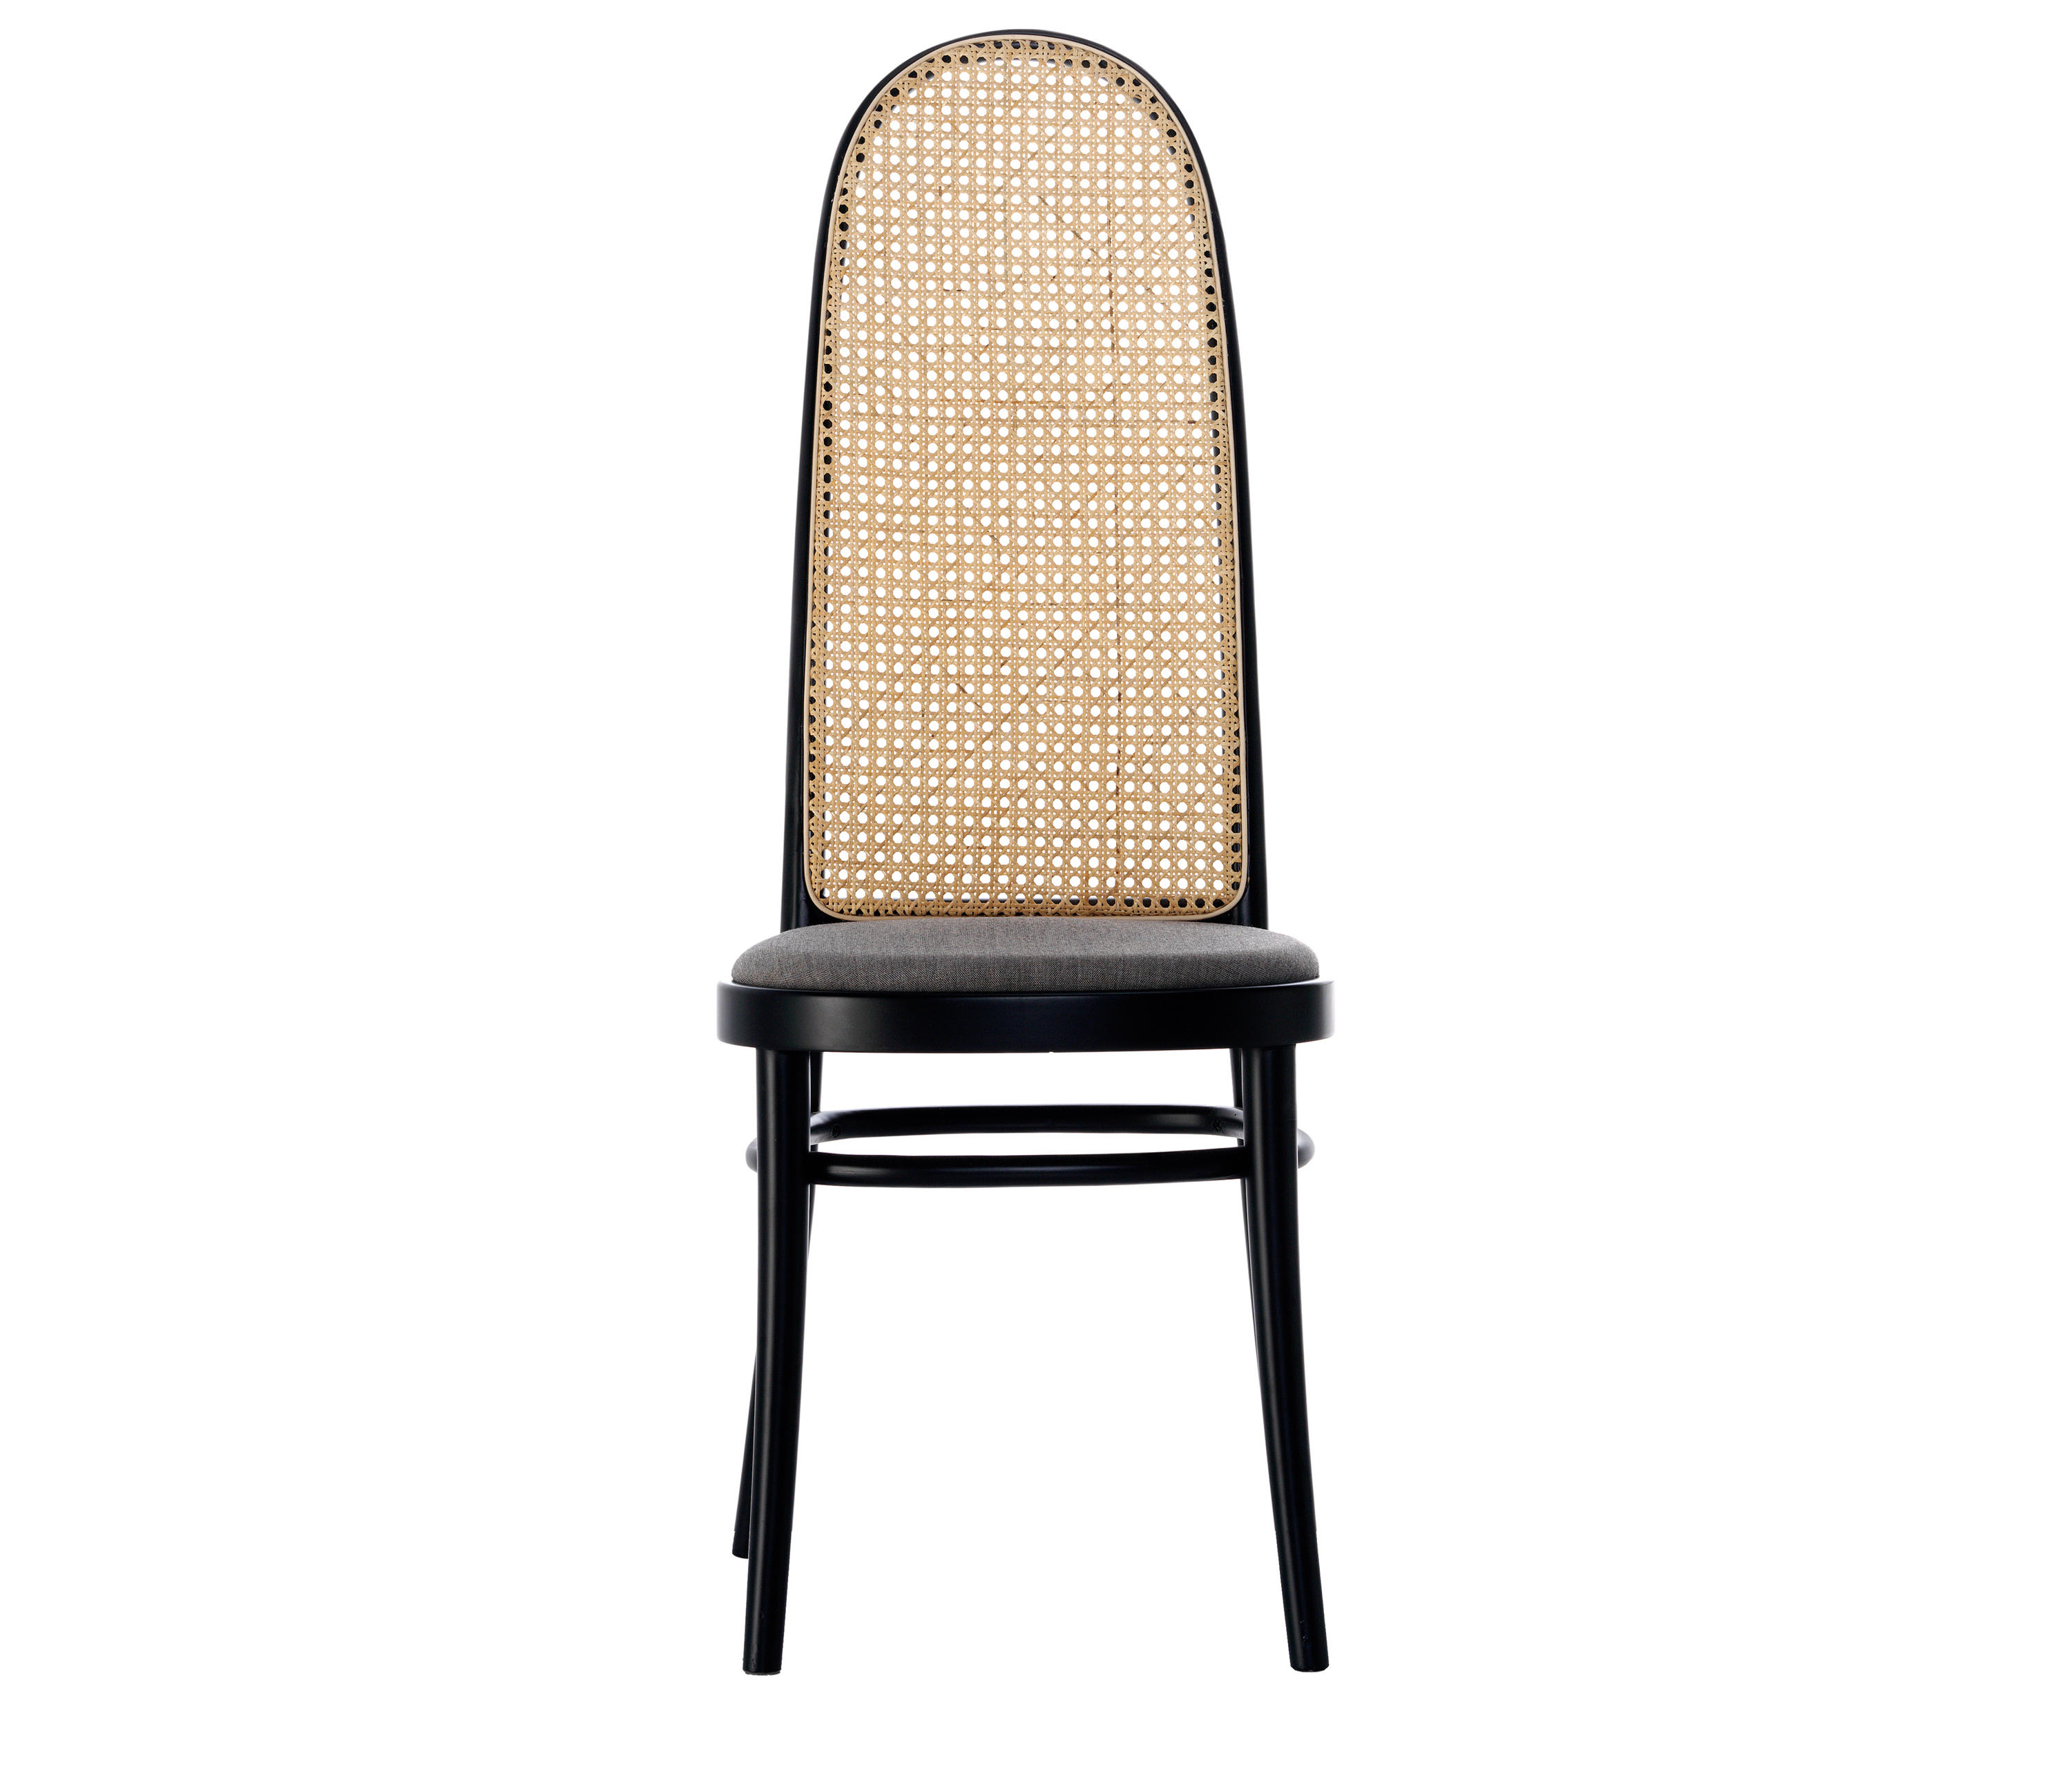 MORRIS - Chairs from WIENER GTV DESIGN  Architonic